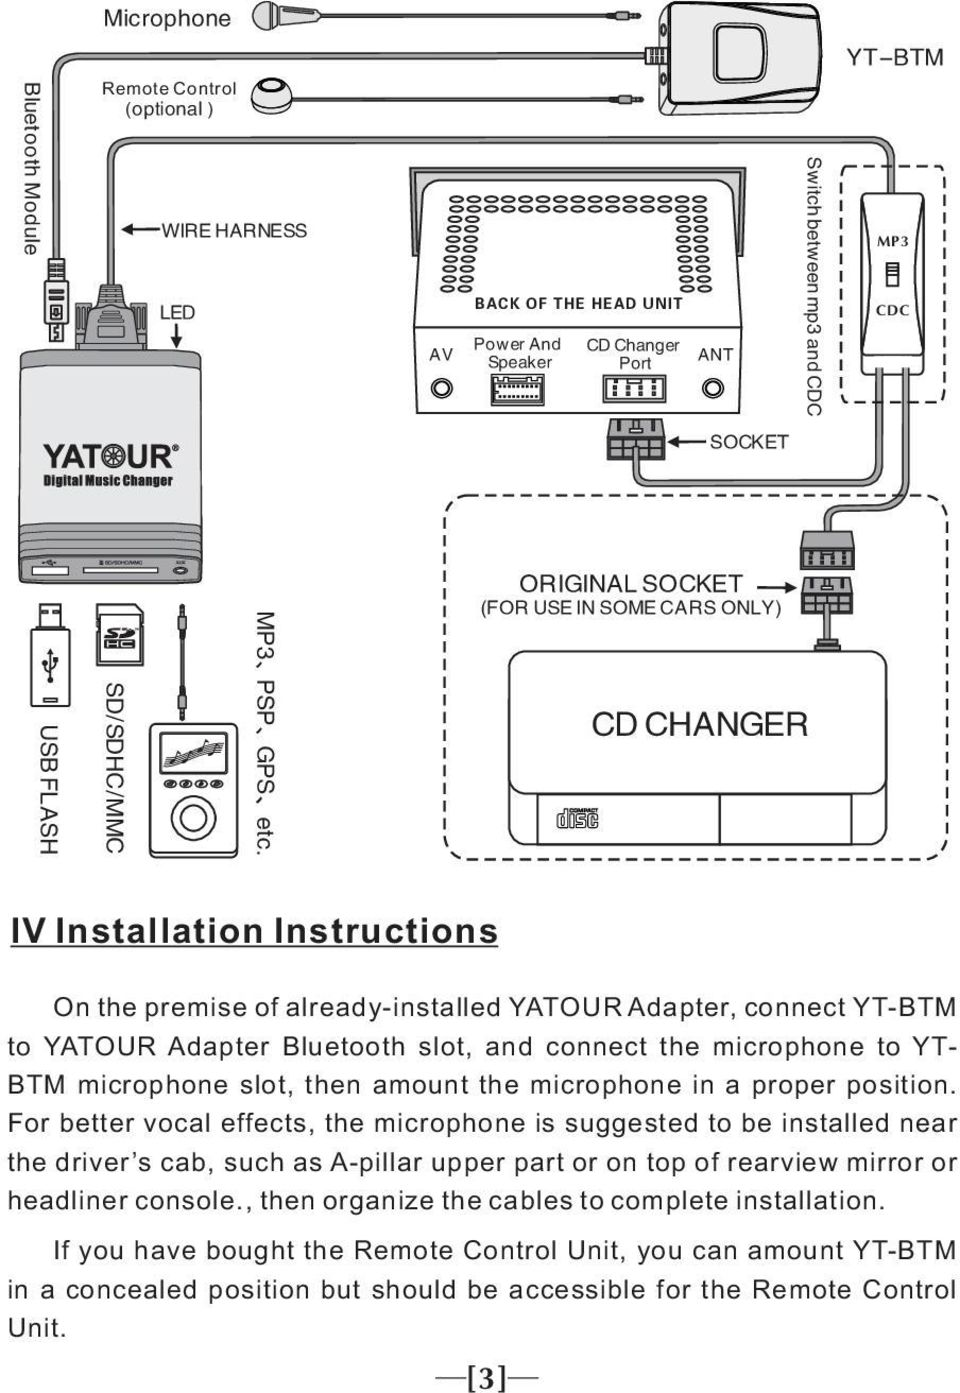 ORIGINAL SOCKET (FOR USE IN SOME CARS ONLY) 原 车 CD/VCD/DVD 机 械 碟 盒 CD CHANGER CD CHANGER IV Installation Instructions On the premise of already-installed YATOUR Adapter, connect YT-BTM to YATOUR